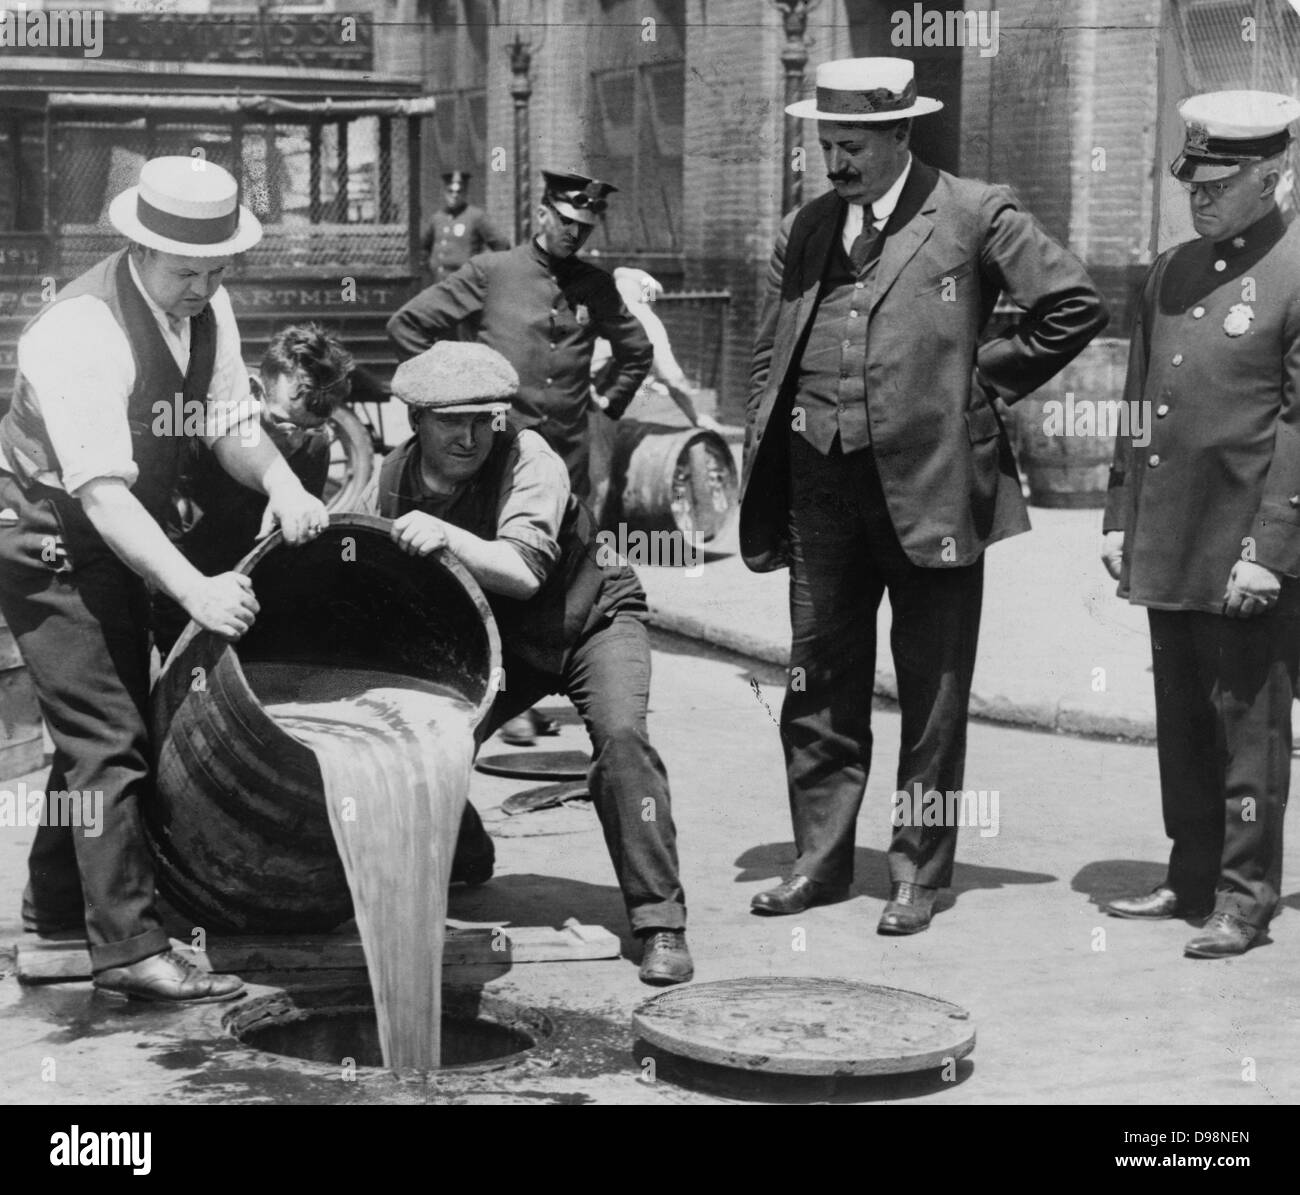 Prohibition in the USA 1920-1933: A barrel of confiscated illegal beer being poured down a drain. Alcohol Temperance - Stock Image